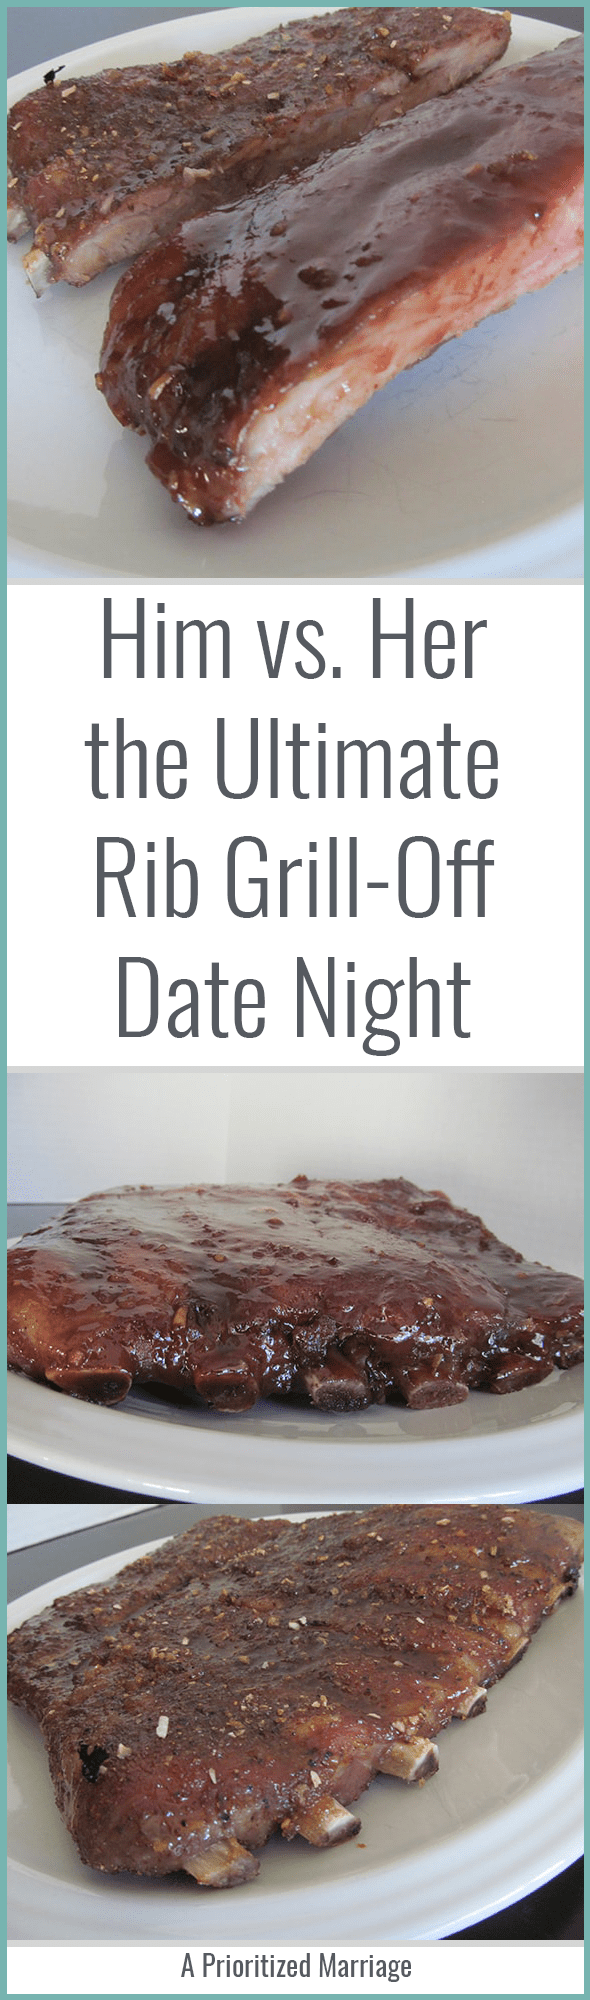 Bring your competitive side for this fun rib grill-off date night